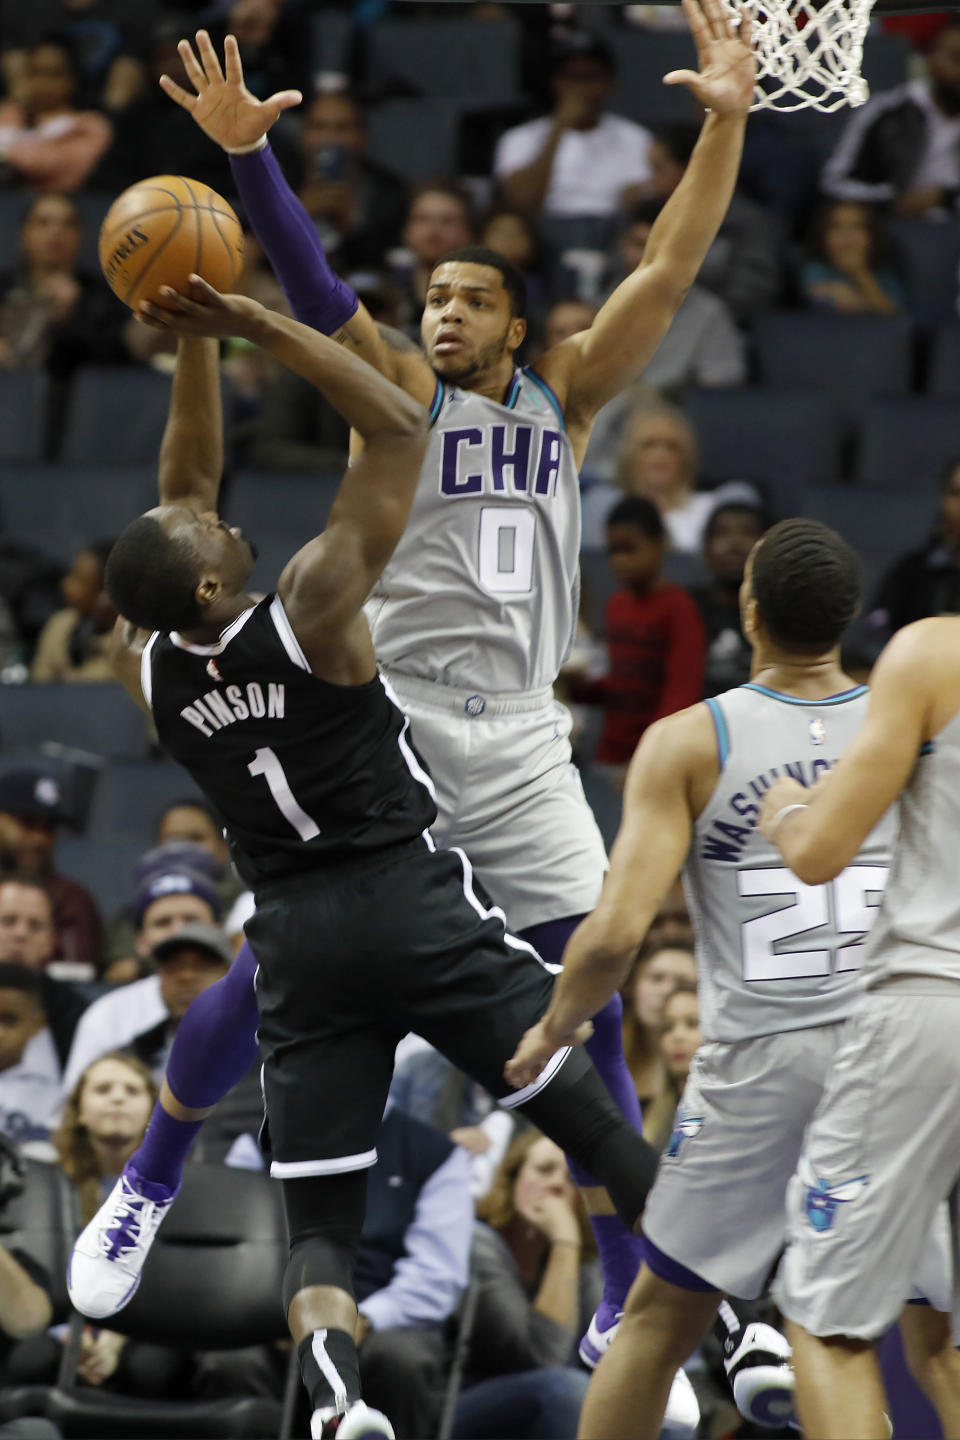 Brooklyn Nets' Theo Pinson (1) tries to get a shot off over Charlotte Hornets' Miles Bridges (0) during the second half of an NBA basketball game in Charlotte, N.C., Friday, Dec. 6, 2019. The Nets won 111-104. (AP Photo/Bob Leverone)